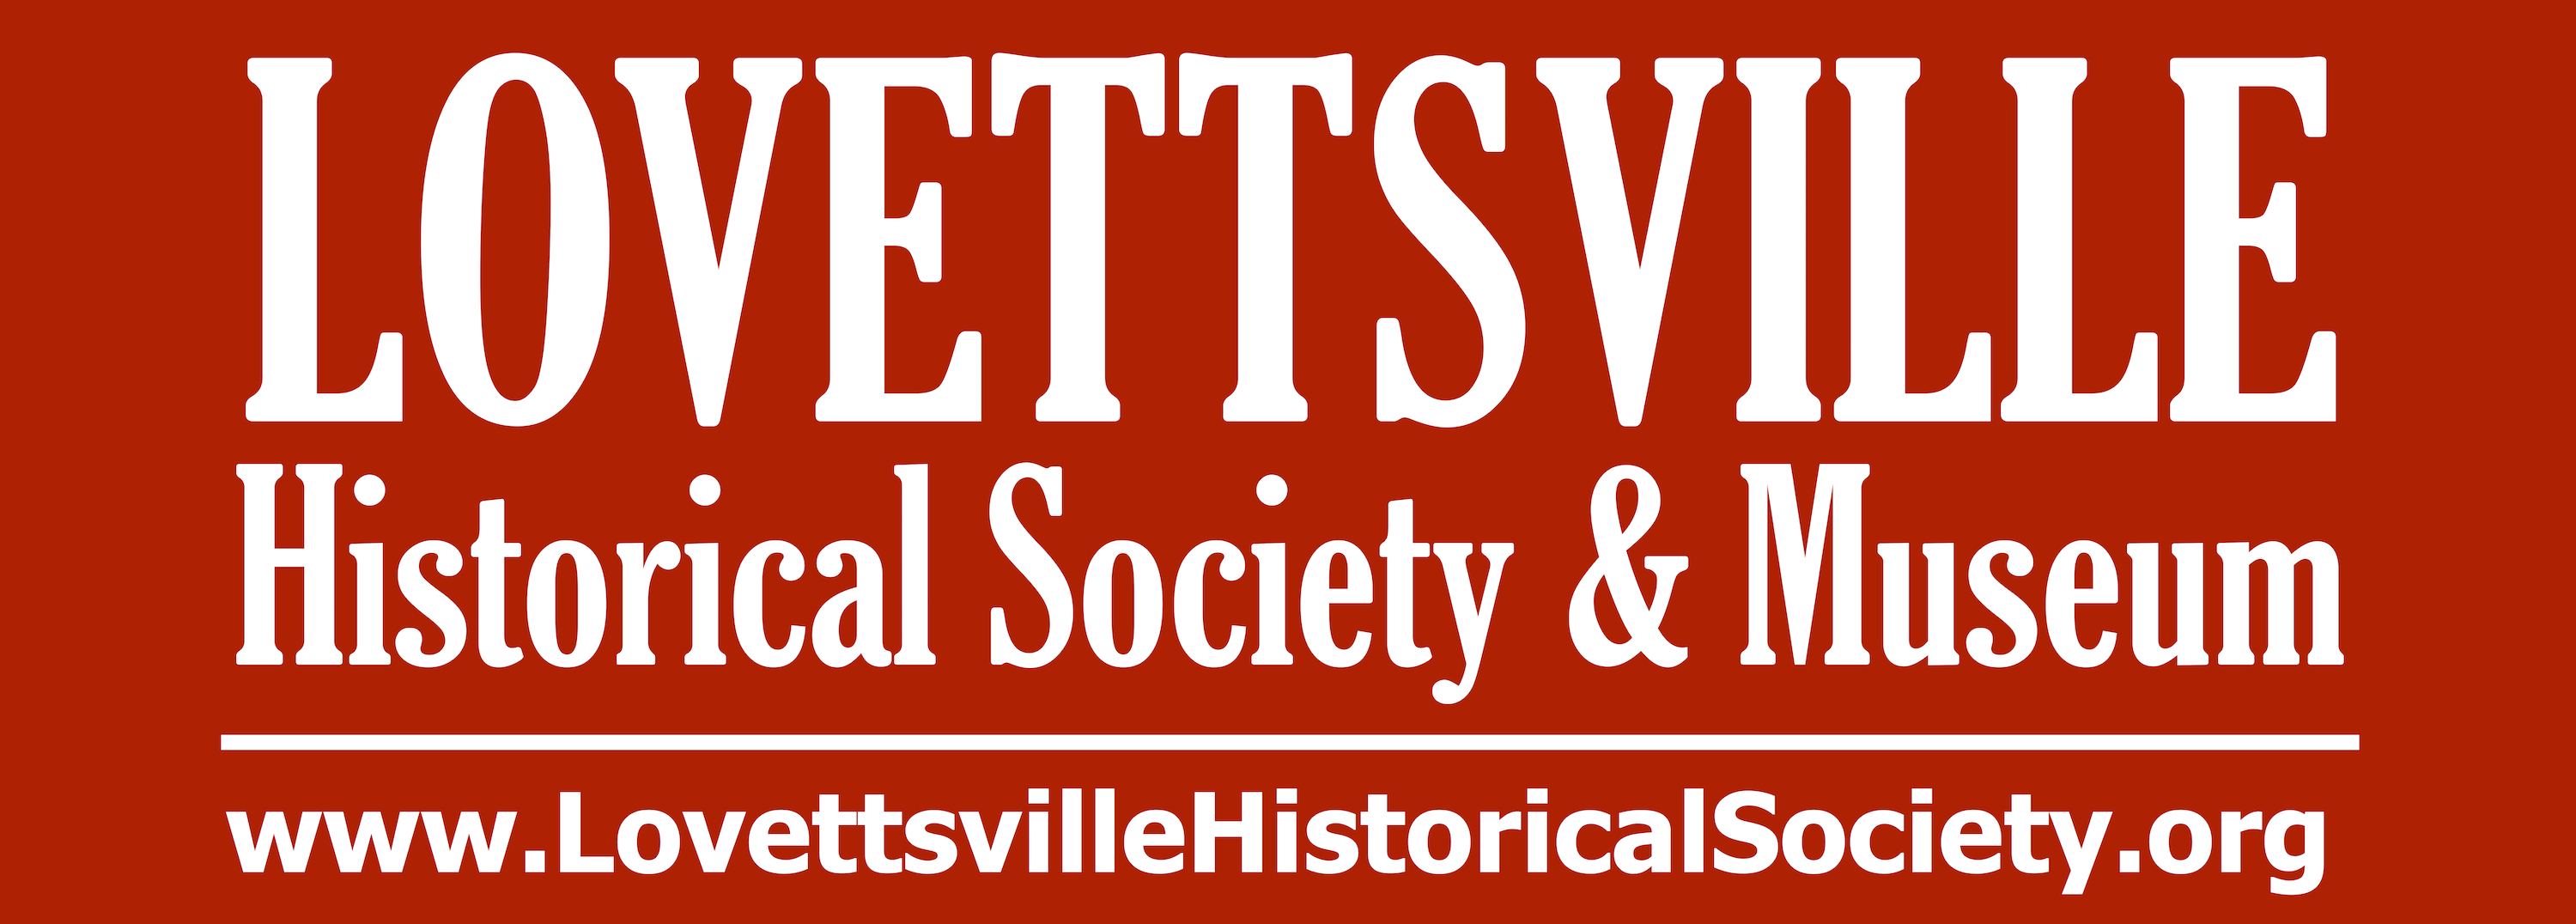 Lovettsville Museum Banner Changing Colors-feb 2018